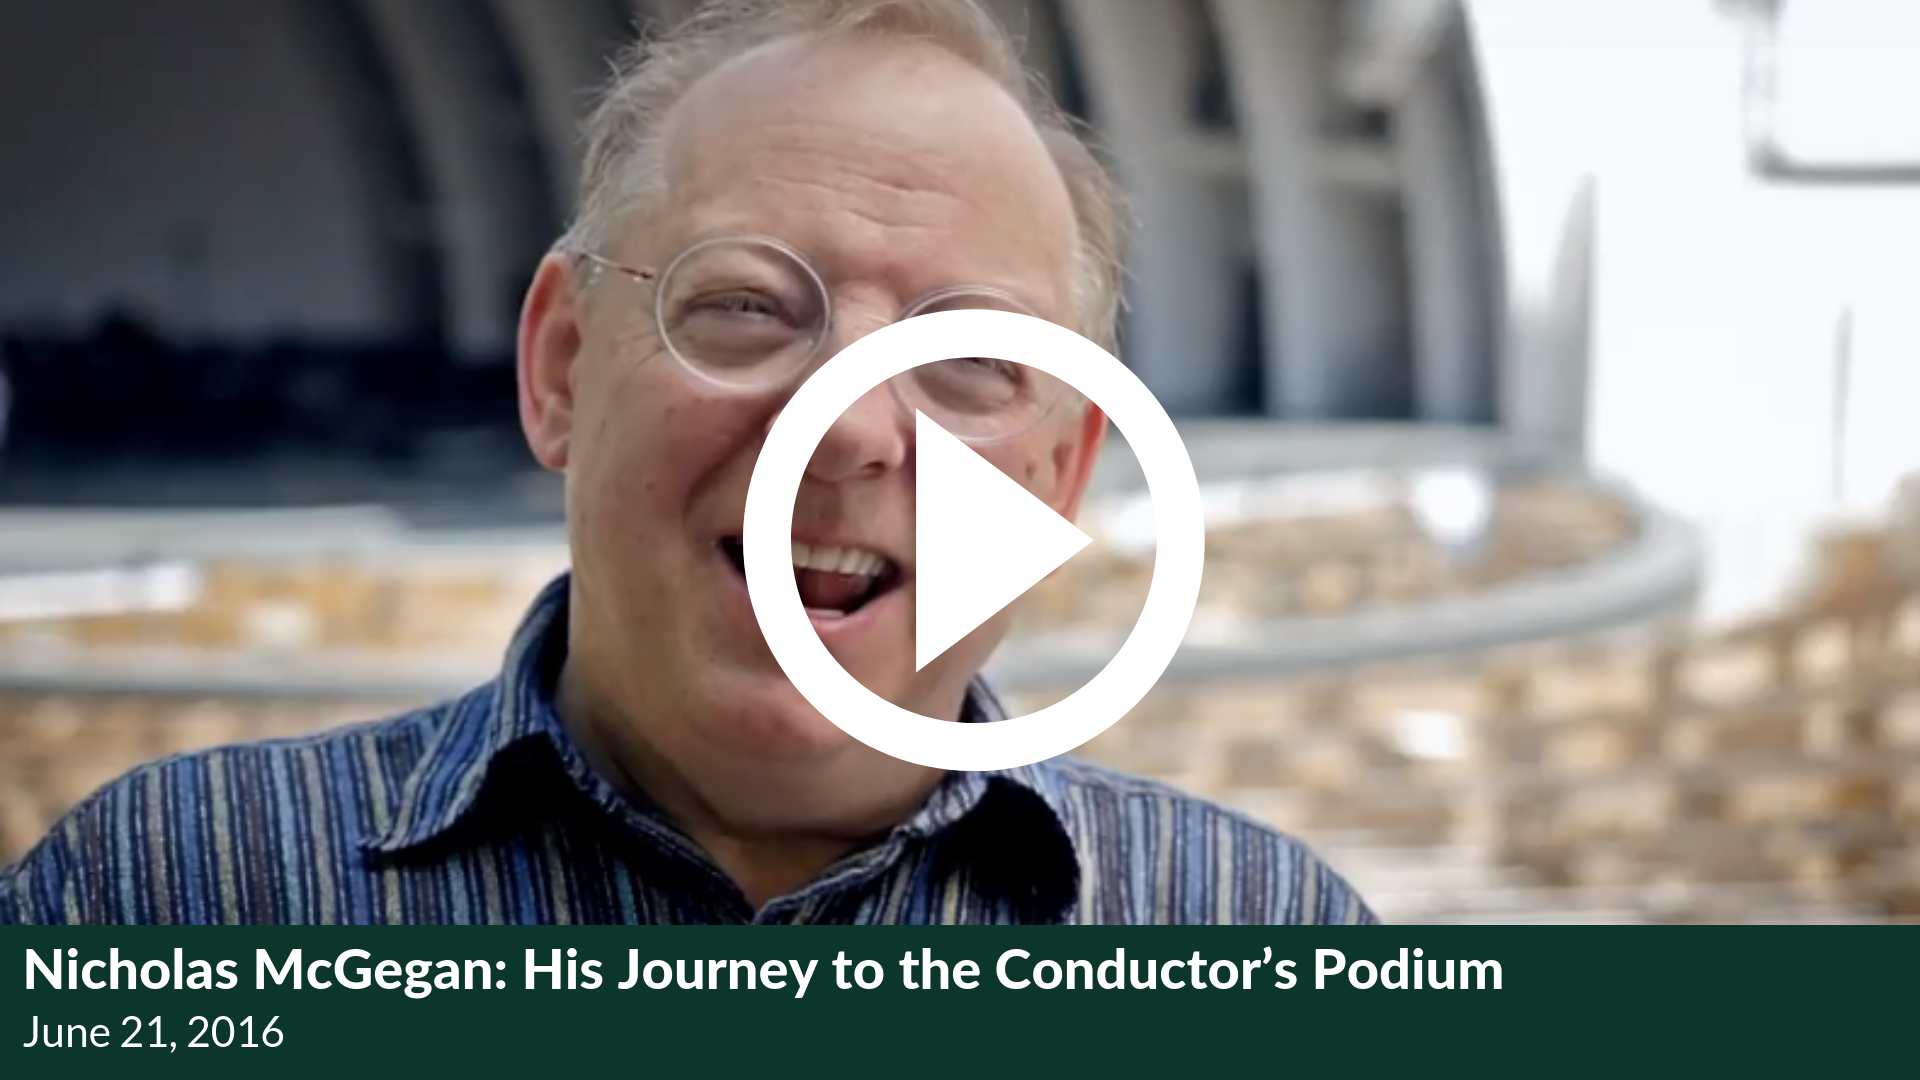 Nicholas McGegan: His Journey to the Conductor's Podium